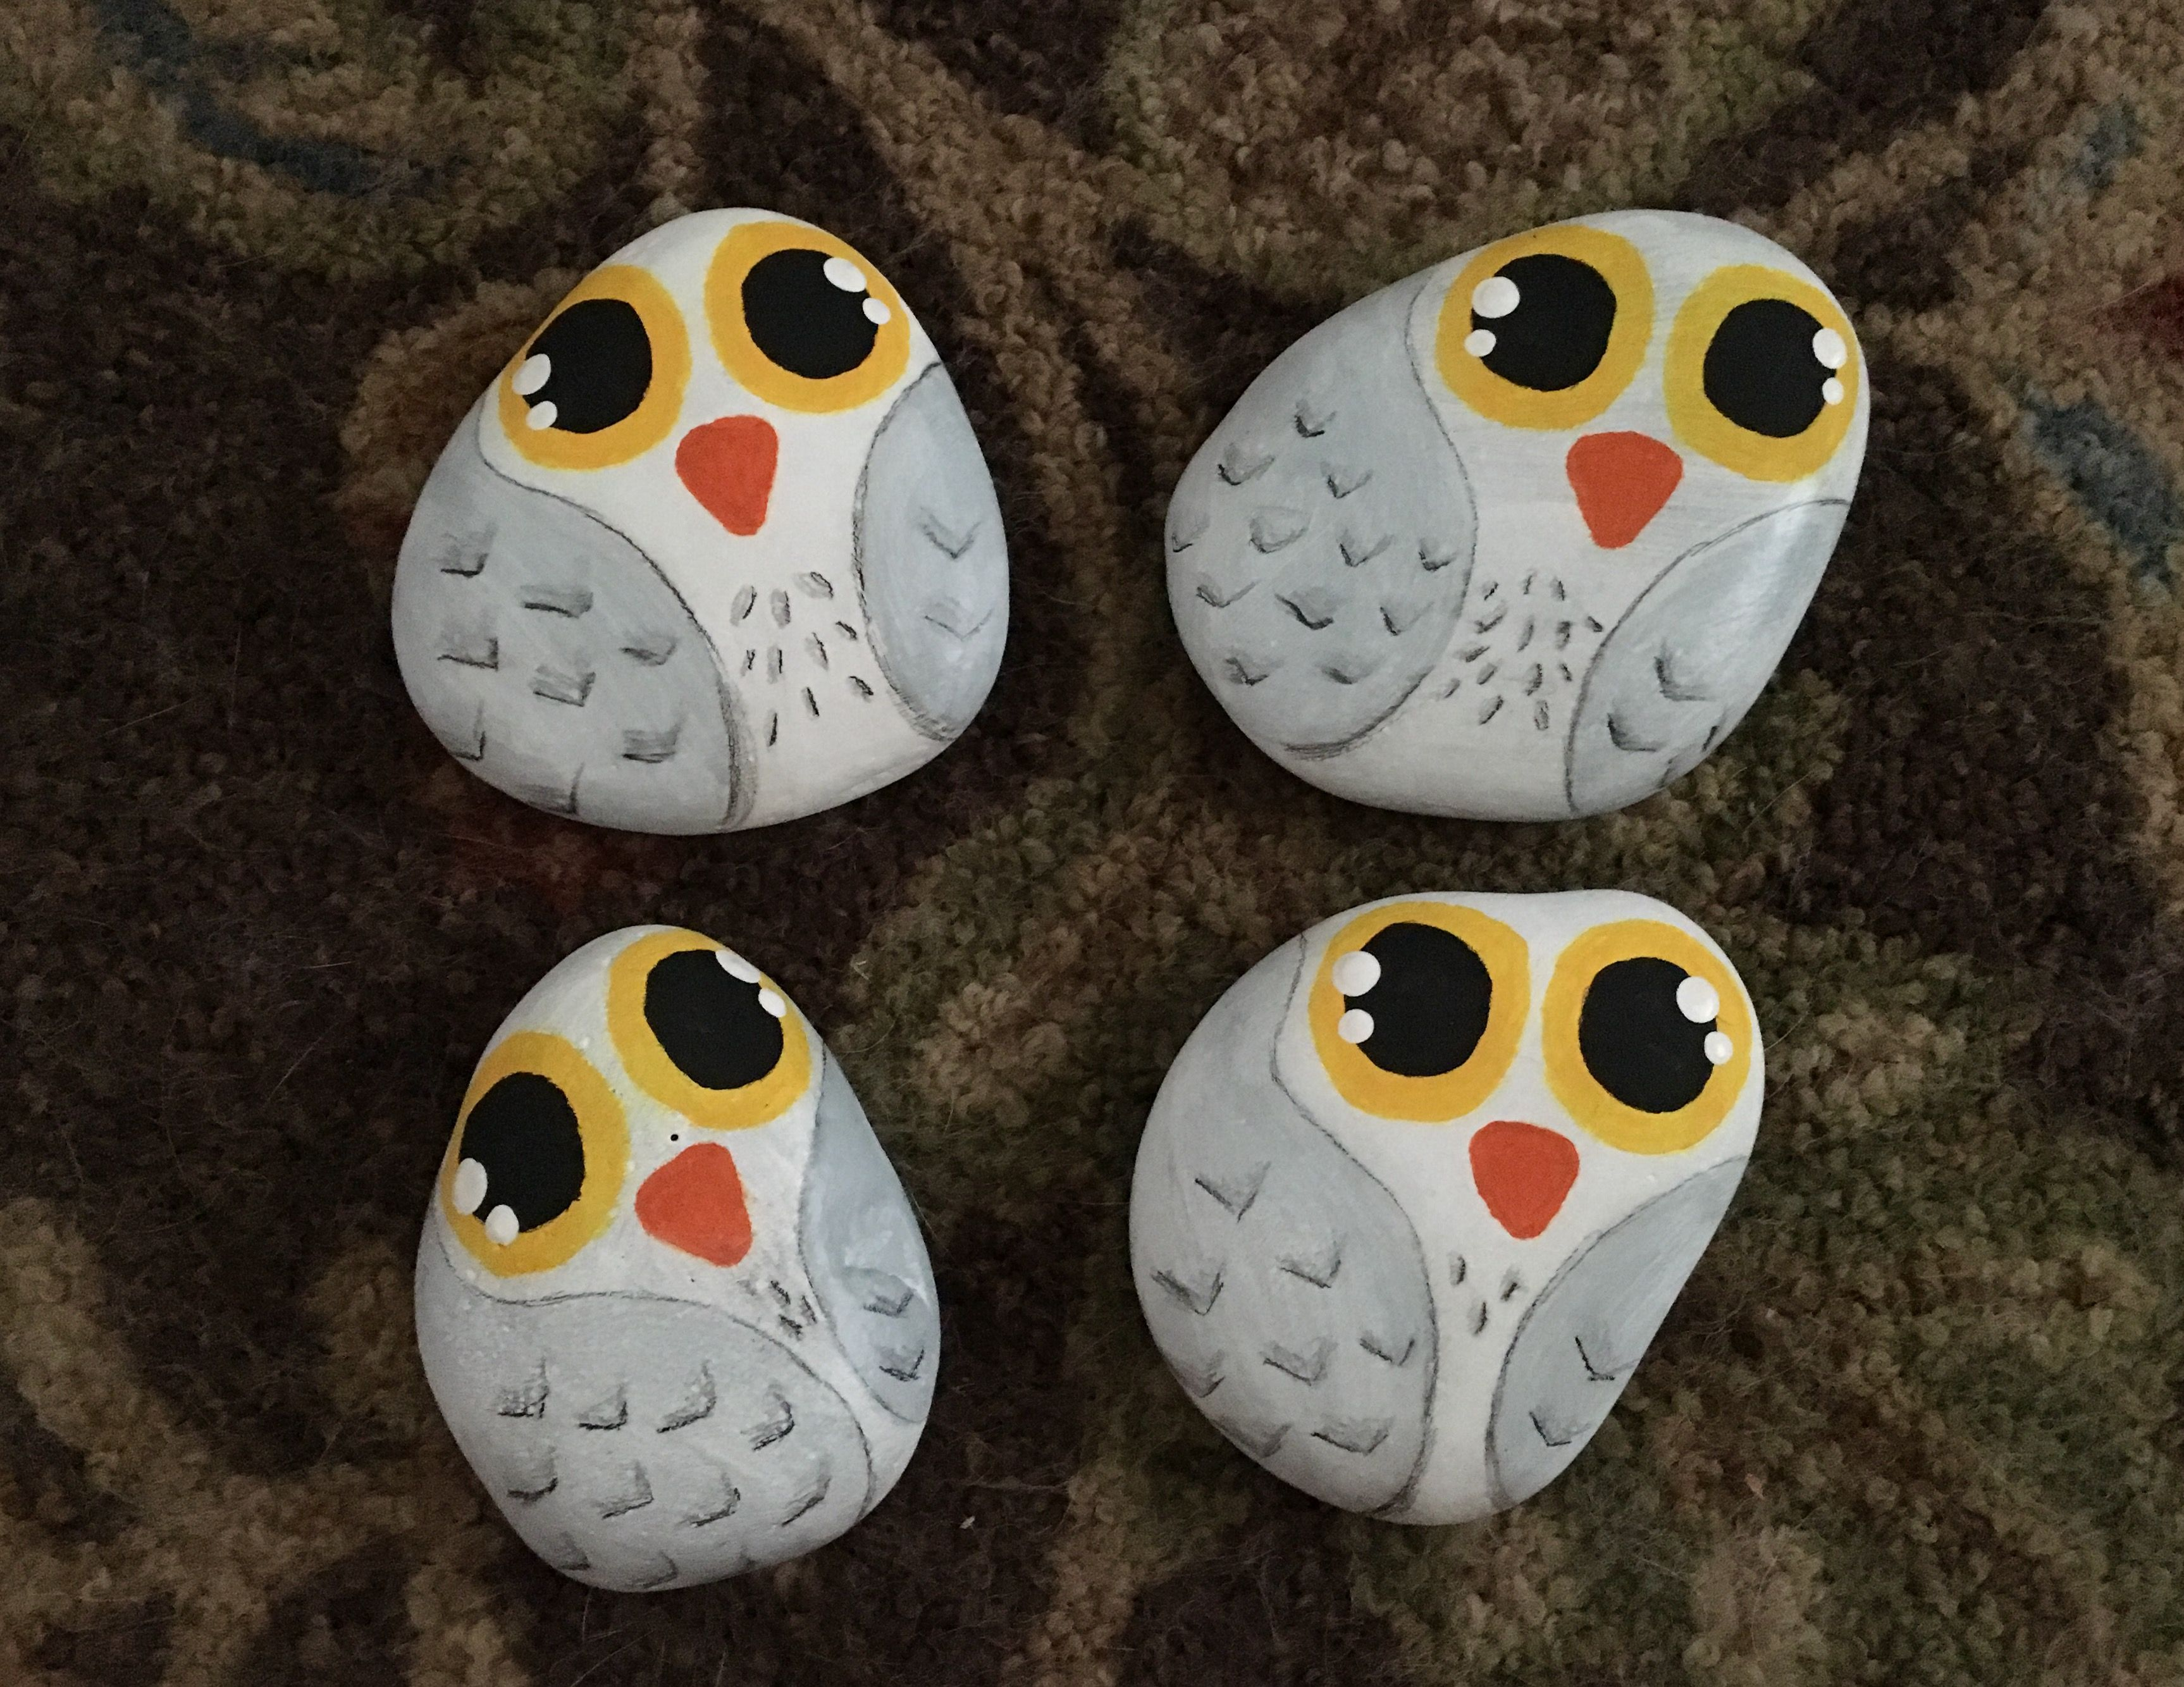 Harry Potter Series Owl Hedwig Rock Painting Find Us On Facebook At Northeast Ohio Rocks Northeas Painted Rocks Kids Painted Rocks Owls Rock Painting Supplies